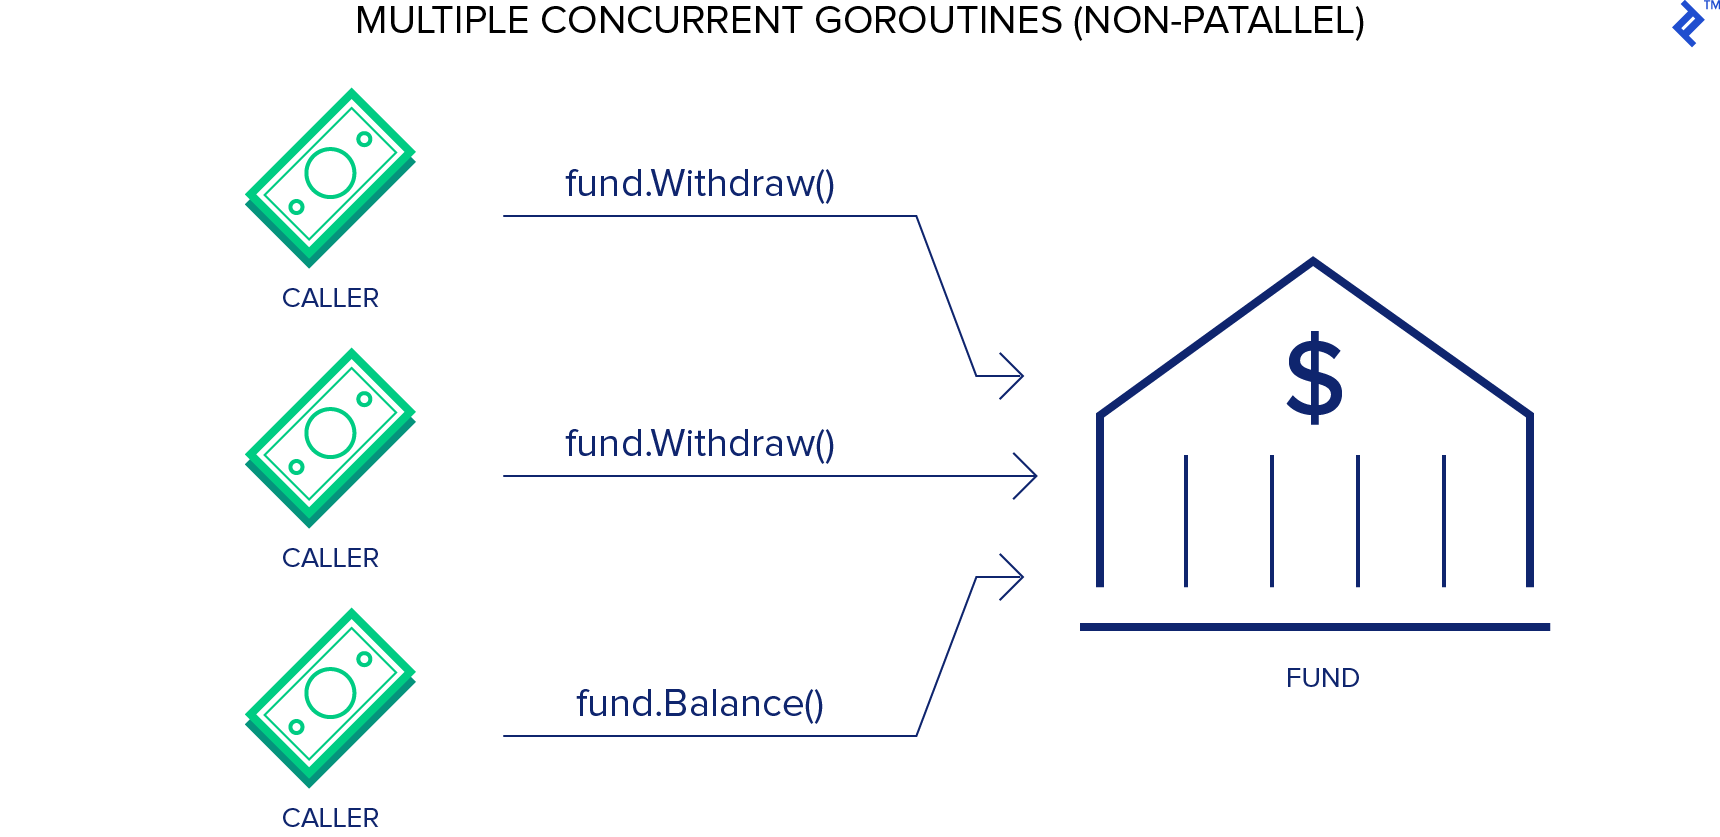 How would we structure muiltiple concurrent goroutines in the Go language?